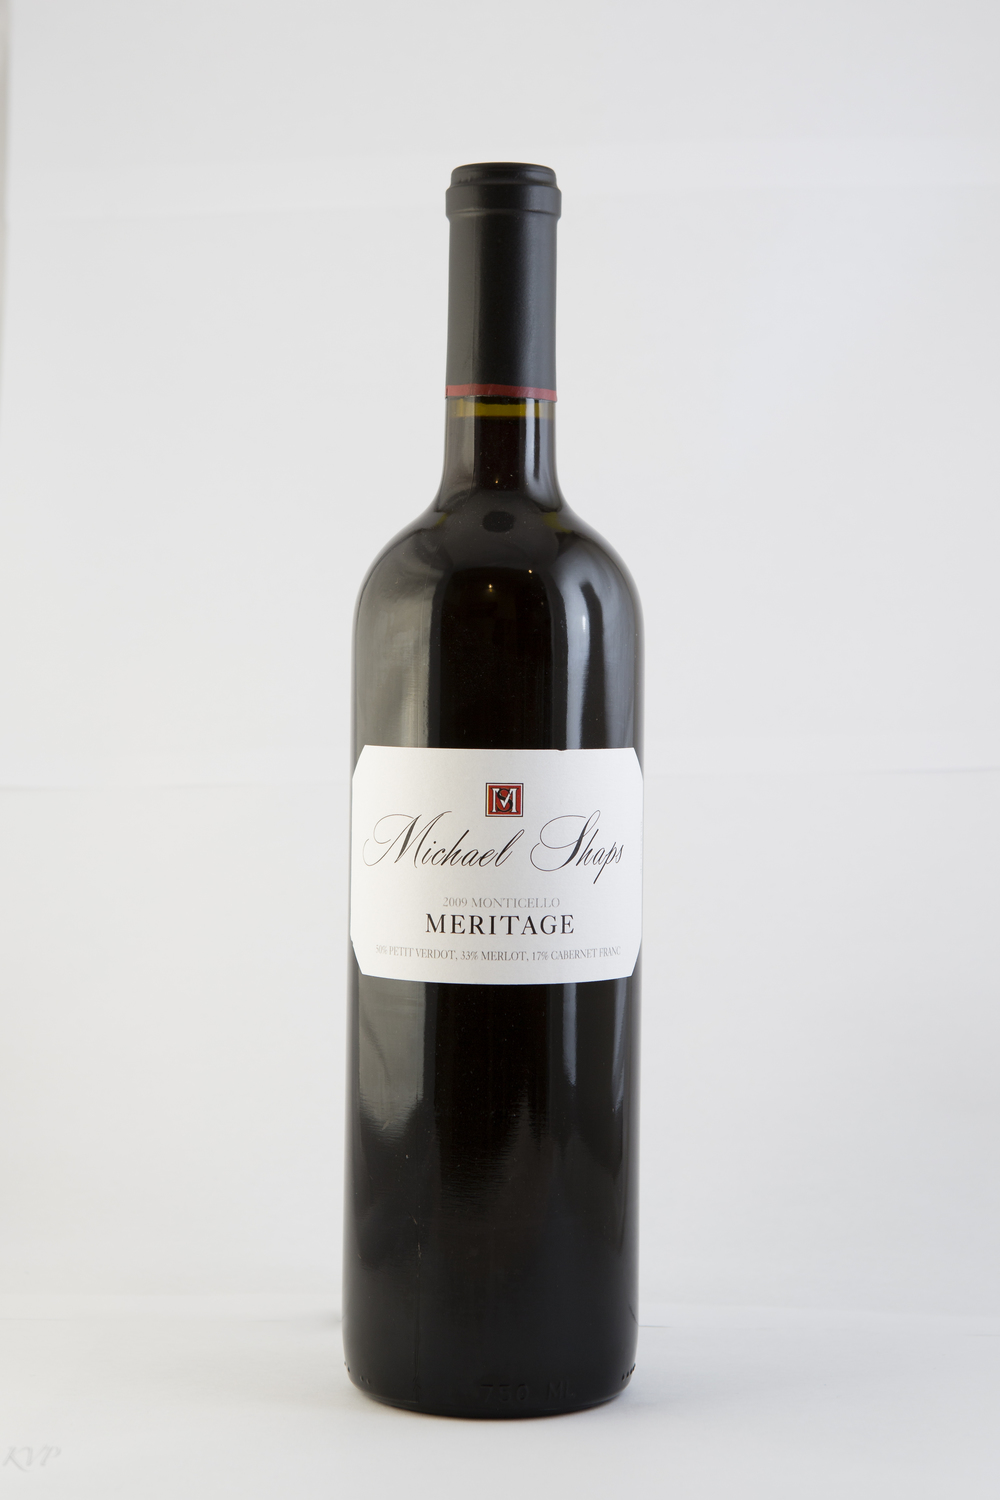 Michael Shaps Meritage 2012 $40 This vintage of Meritage is anchored in Merlot, complimented by Cabernet Sauvignon, Petit Verdot, and Cabernet Franc. The goal is always to produce a concentrated and deep wine, highly complex in both aroma and flavor, with the capacity to age for ten years or more. The blend changes with each vintage as we pull from the most successful lots to achieve this goal. It is aged for two years in all French oak, 50% of which is new.